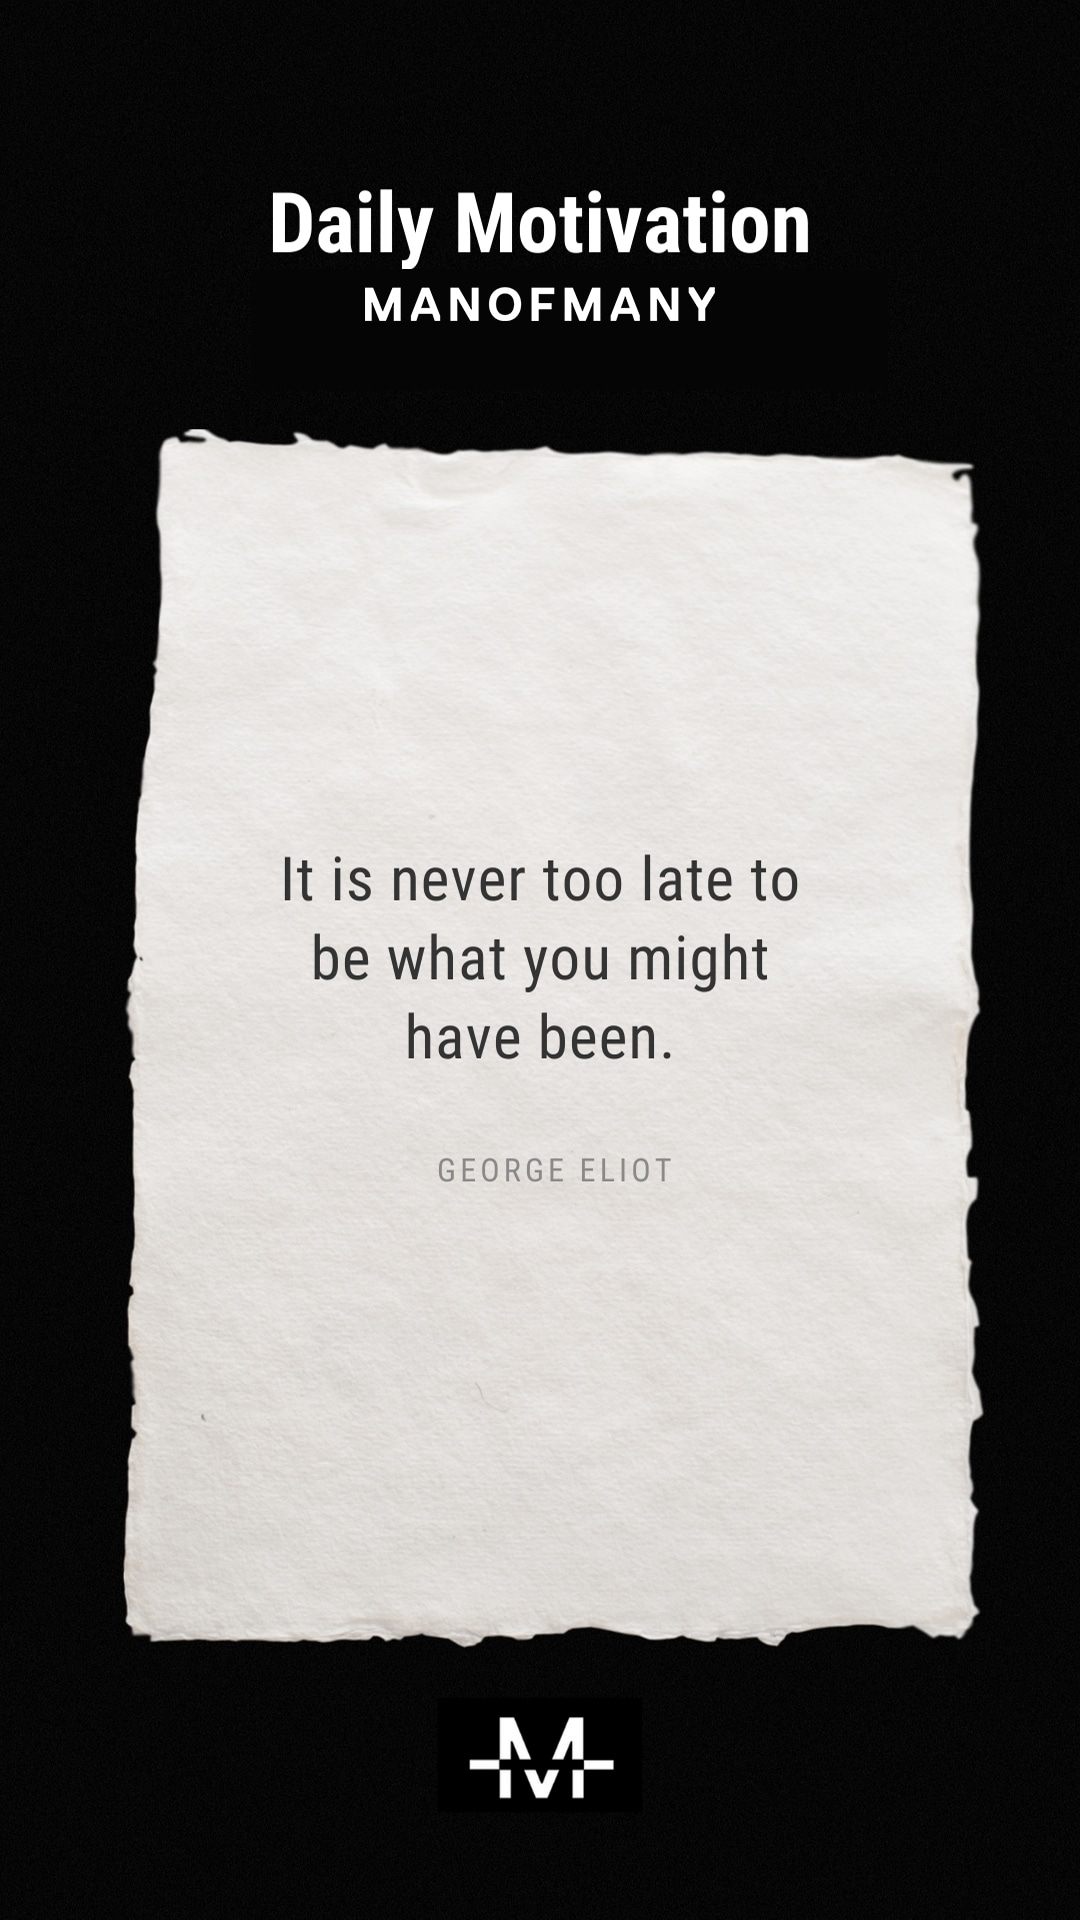 It is never too late to be what you might have been. –George Eliot quote